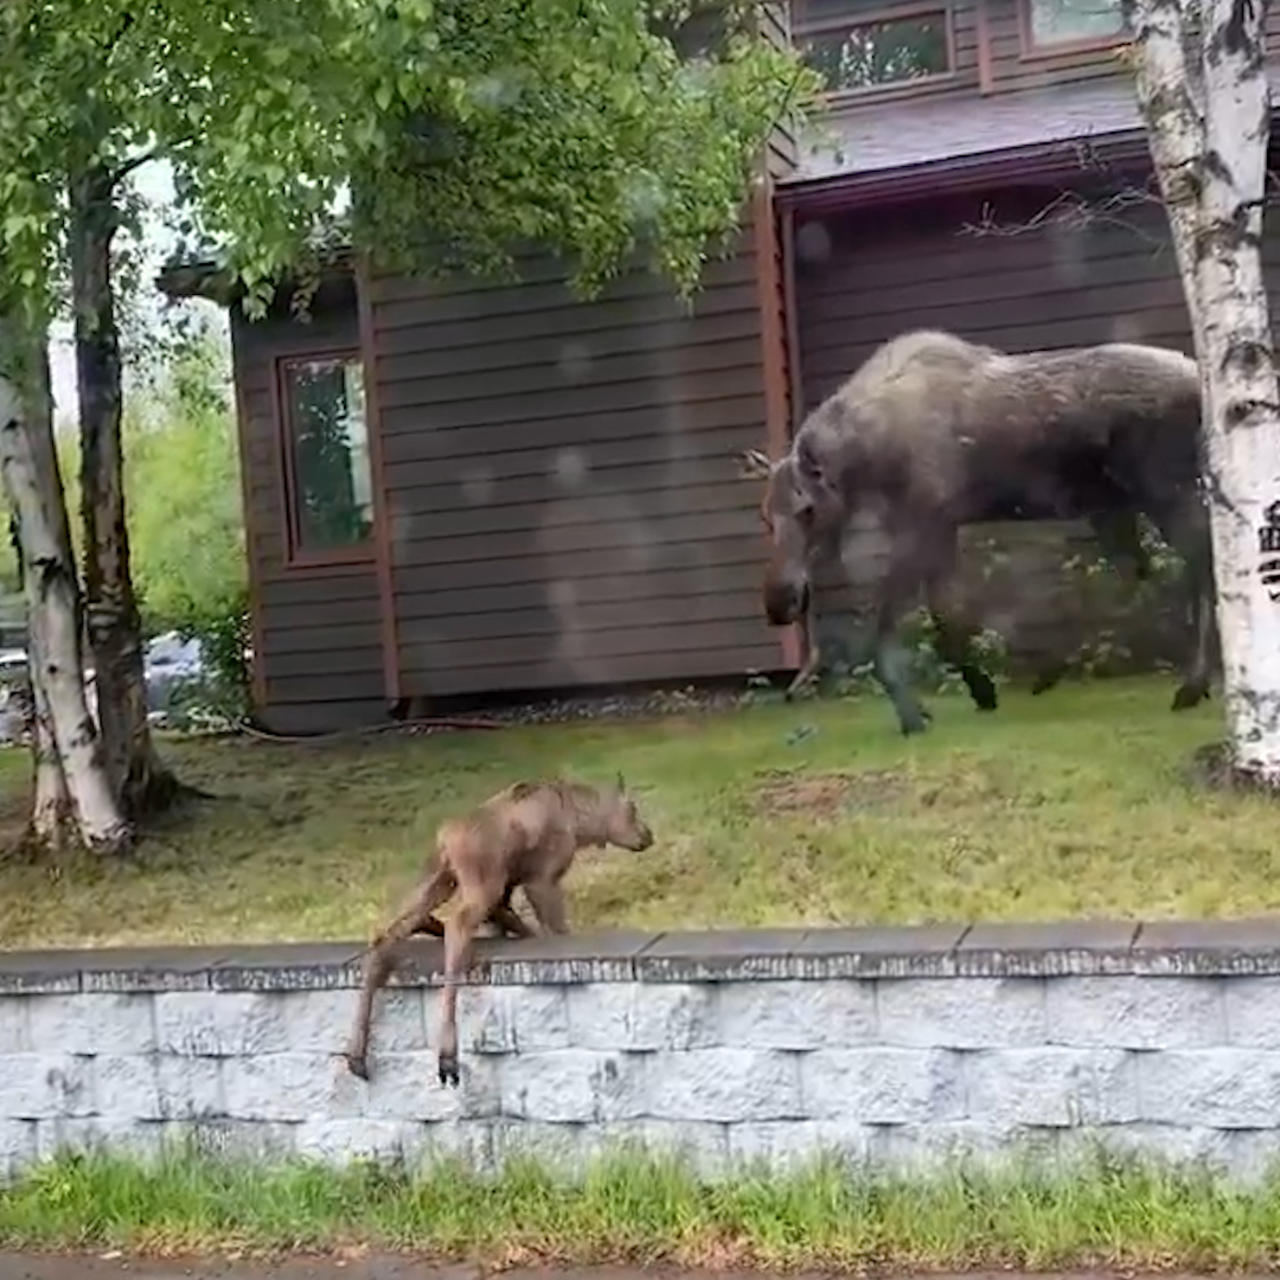 Baby moose can't hop over wall like his mom